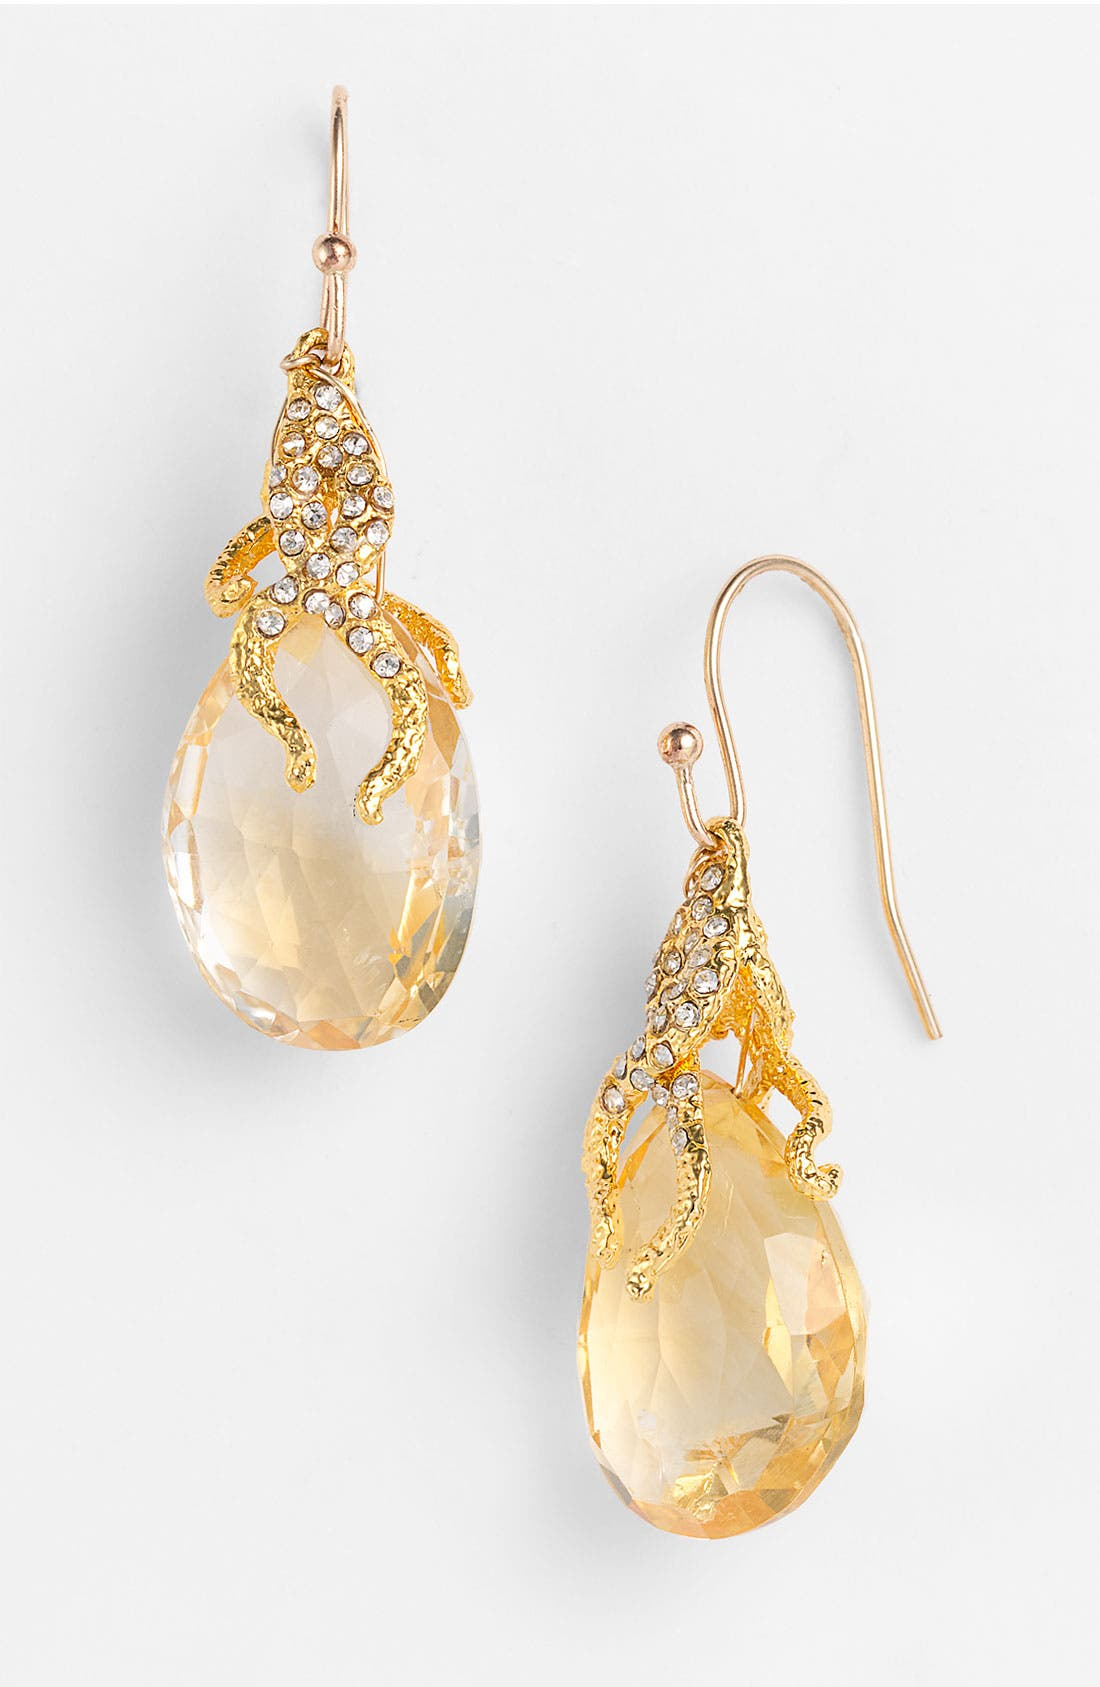 Main Image - Alexis Bittar 'Elements' Vine Capped Earrings (Nordstrom Exclusive)